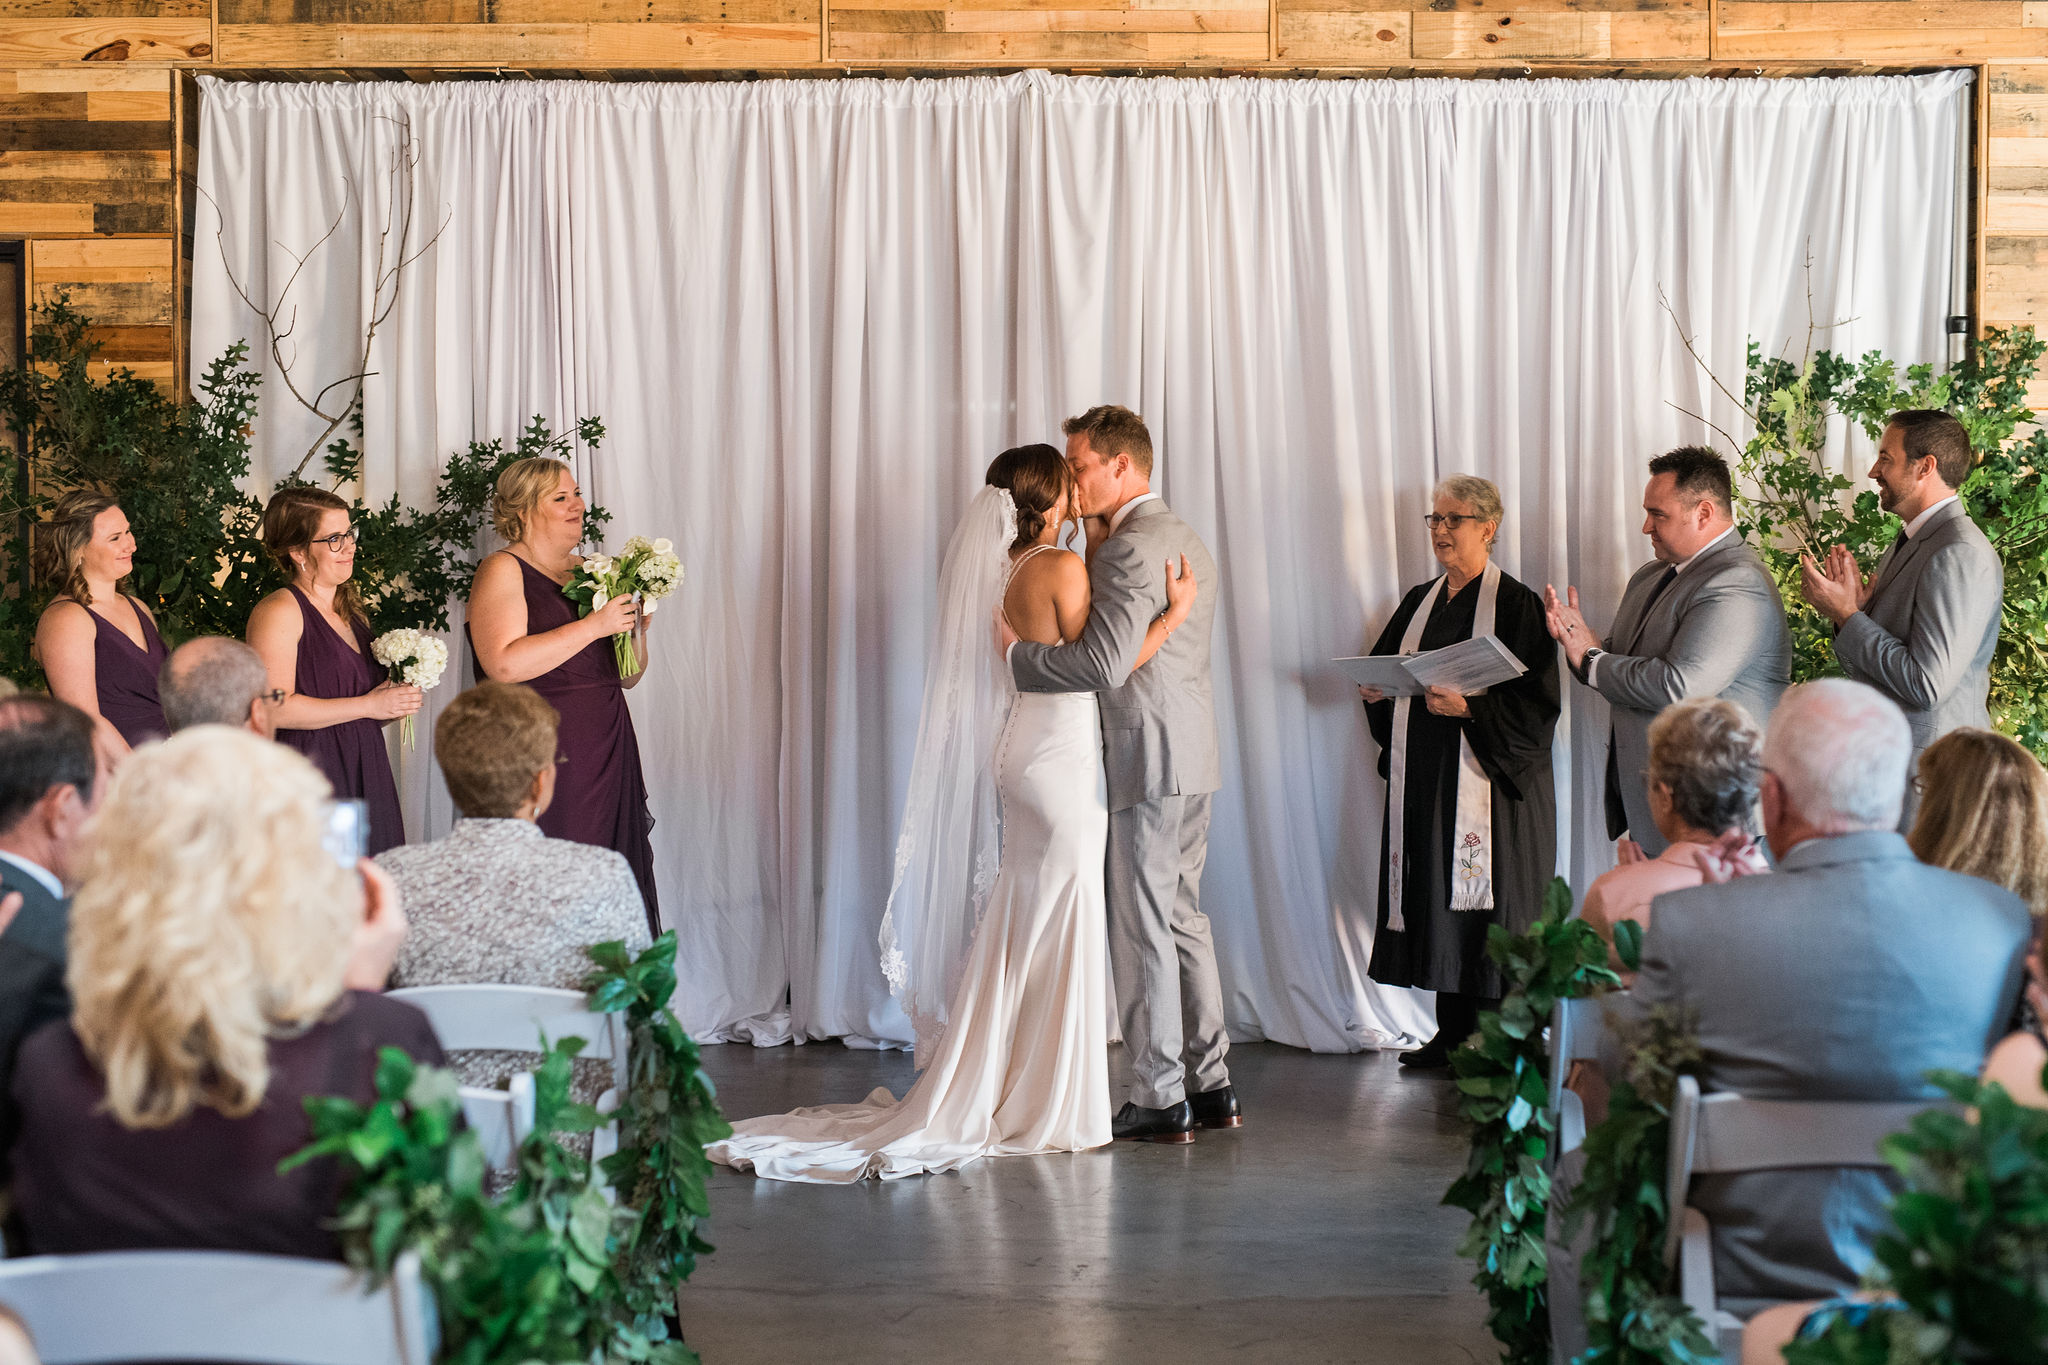 Bride and groom exchange a kiss after their vows at Triple C Barrel Room captured by Sunshower Photography